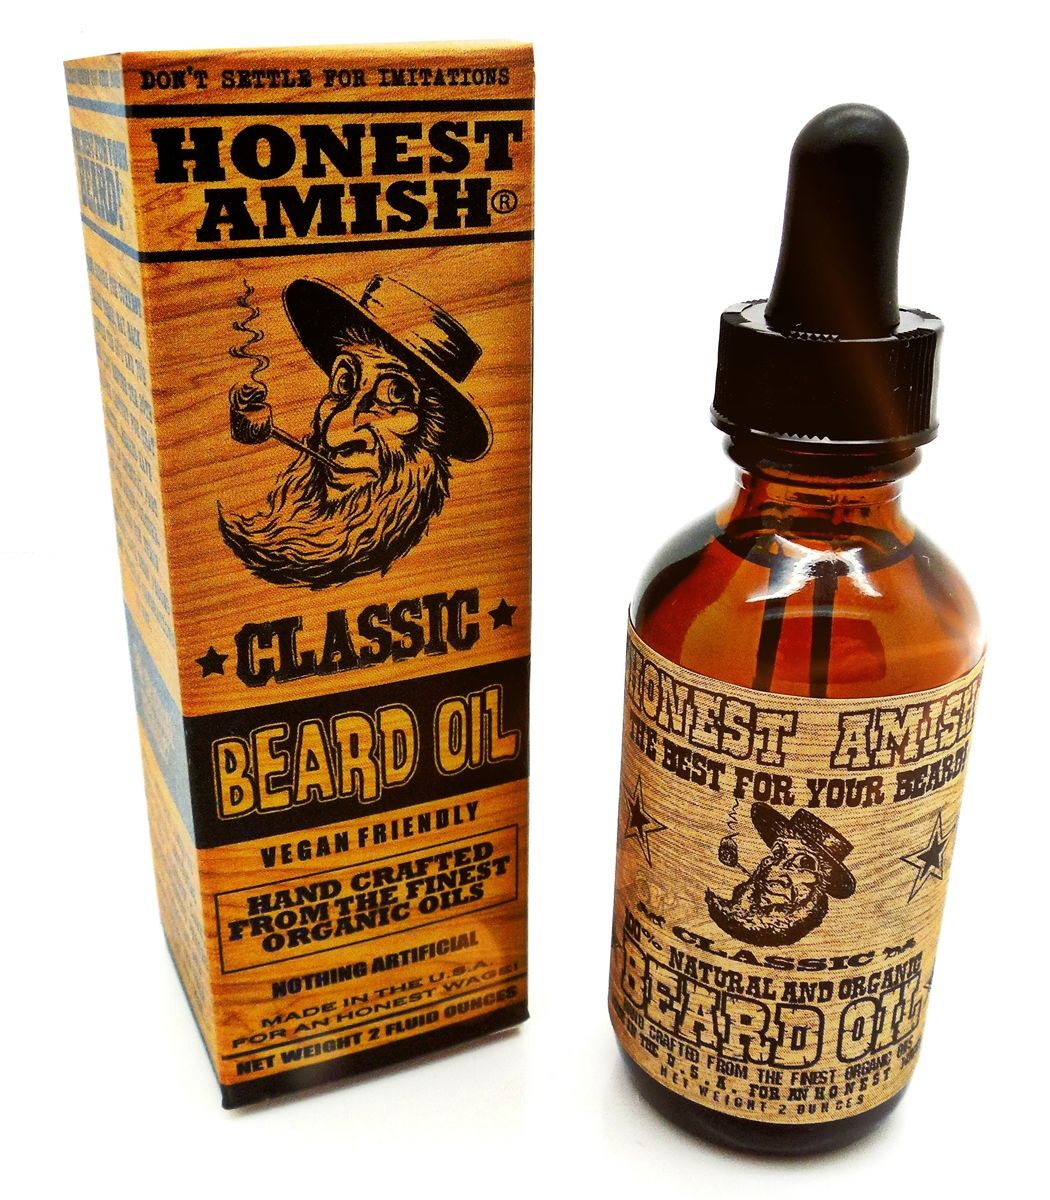 Honest Amish Classic Beard Oil. '' The Best for Your Beard